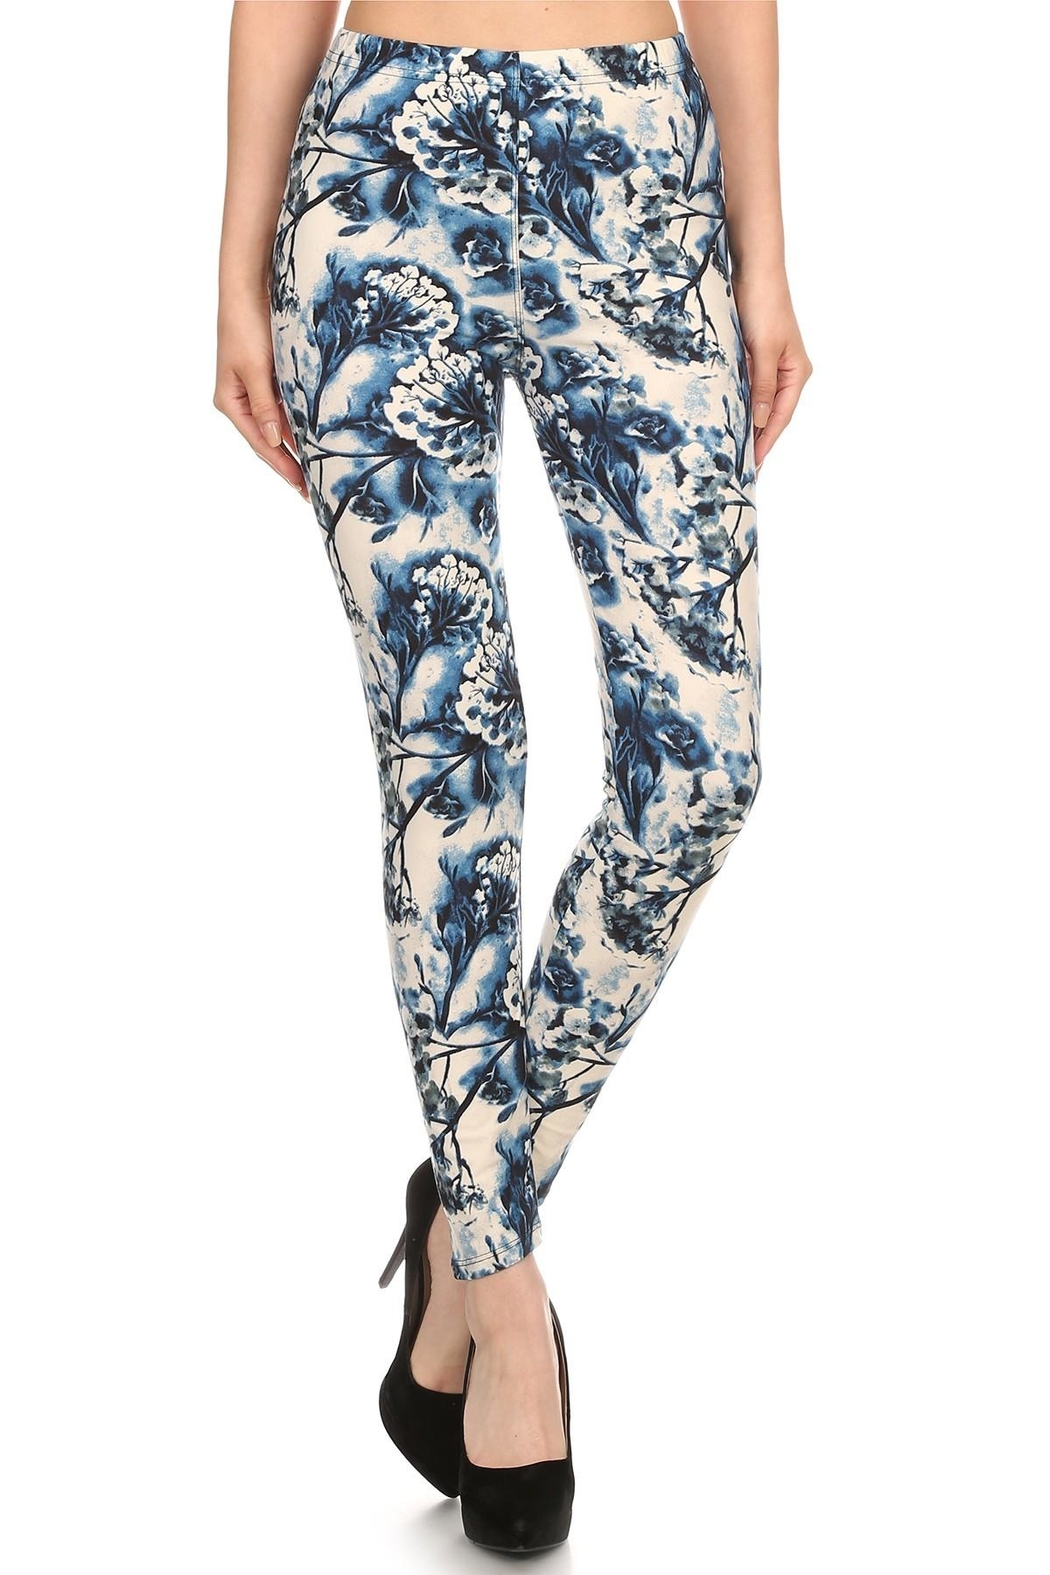 Leg Avenue Blue Floral Leggings - Front Cropped Image